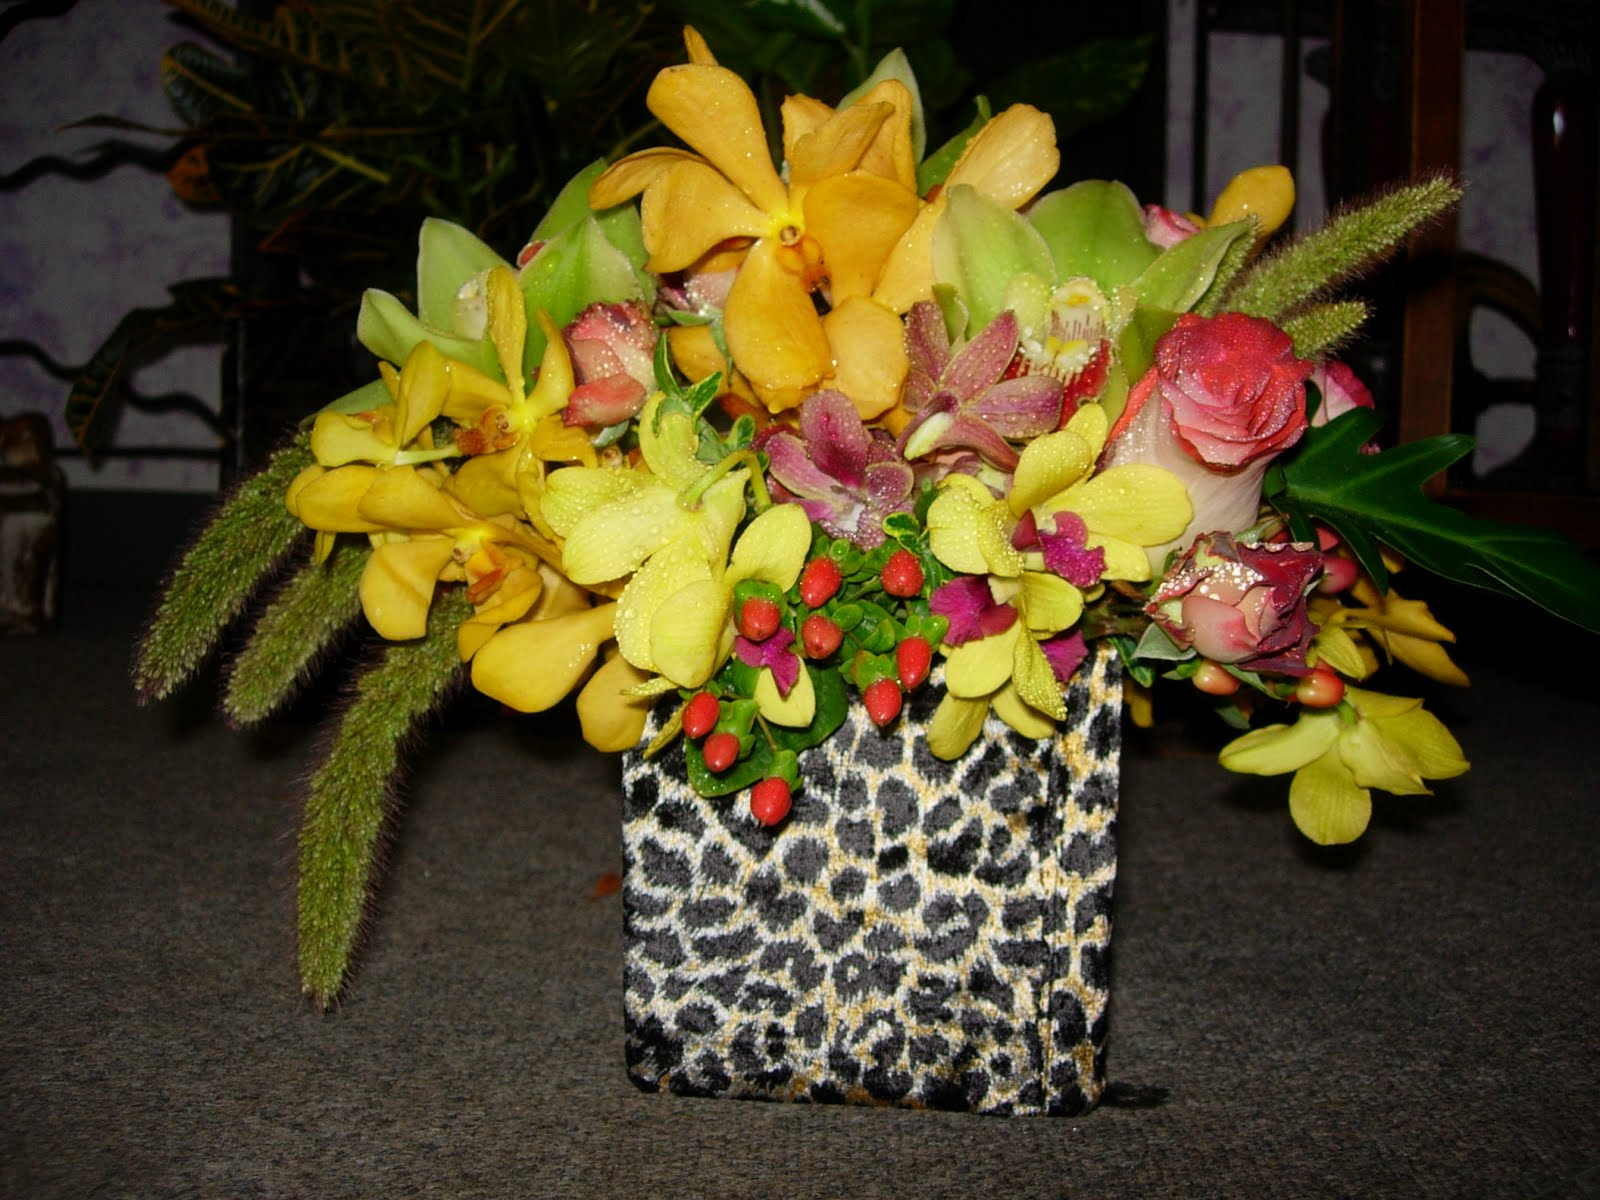 Do it yourself weddings safari look vases having a zoo wedding or a wedding where you want a jungle look consider covering your vases with zebra or leopard print material to include the wildlife solutioingenieria Choice Image